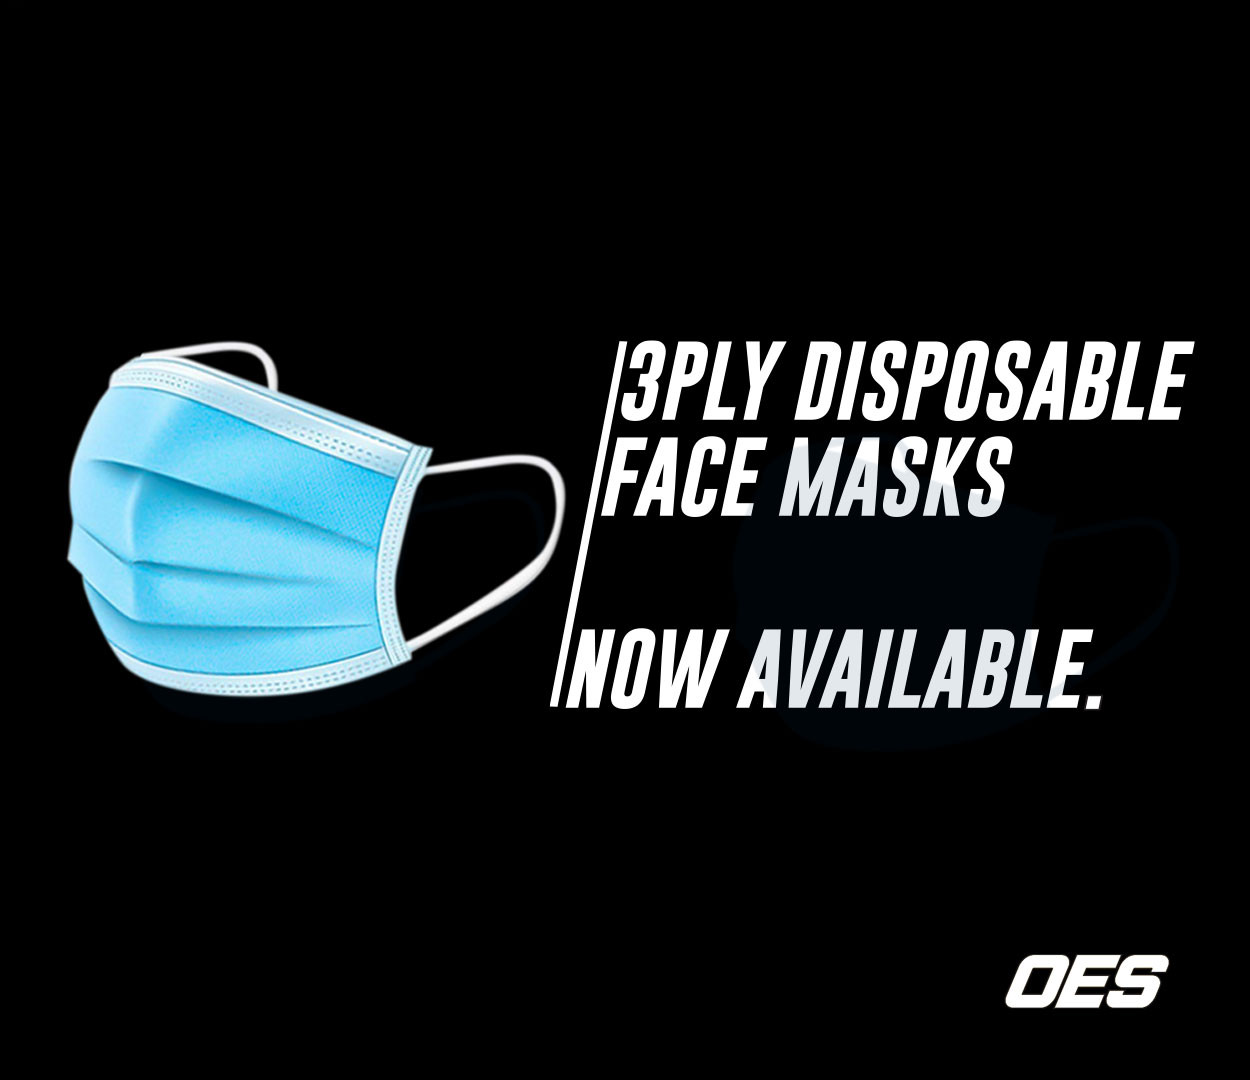 oes-facemasks.jpg